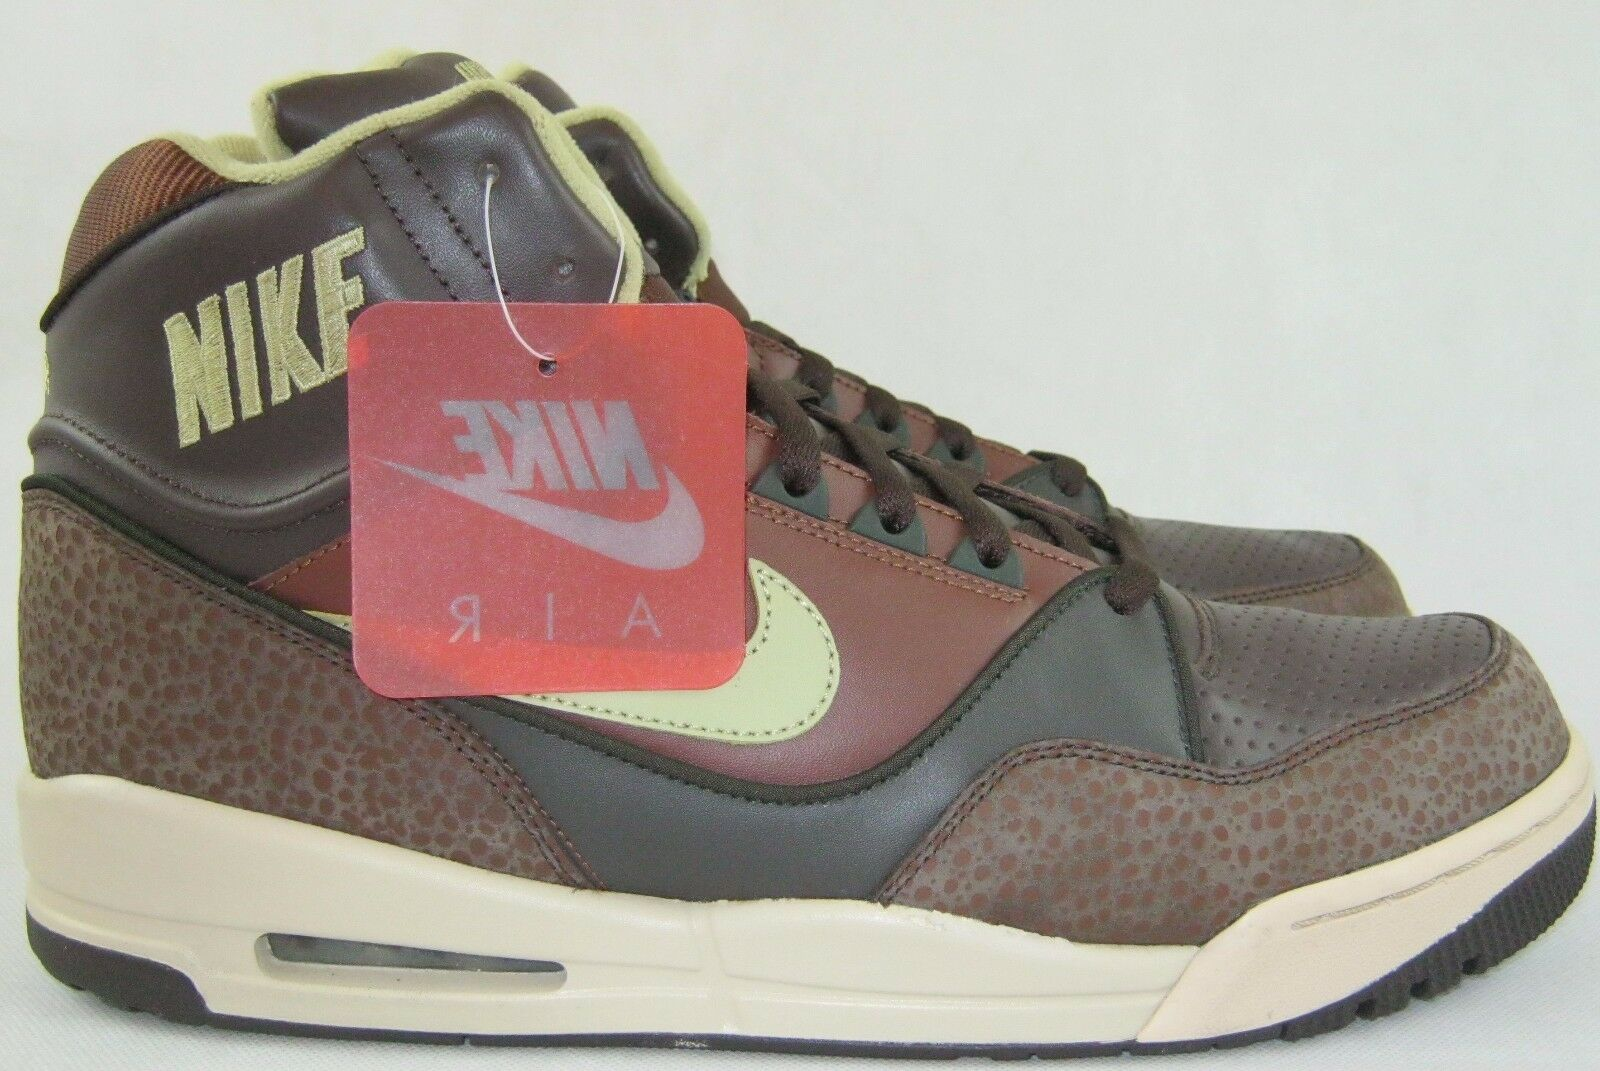 NWOB MEN'S NIKE AIR ASSAULT HIGH 315064-231 BASKETBALL SNEAKERS SIZE 13